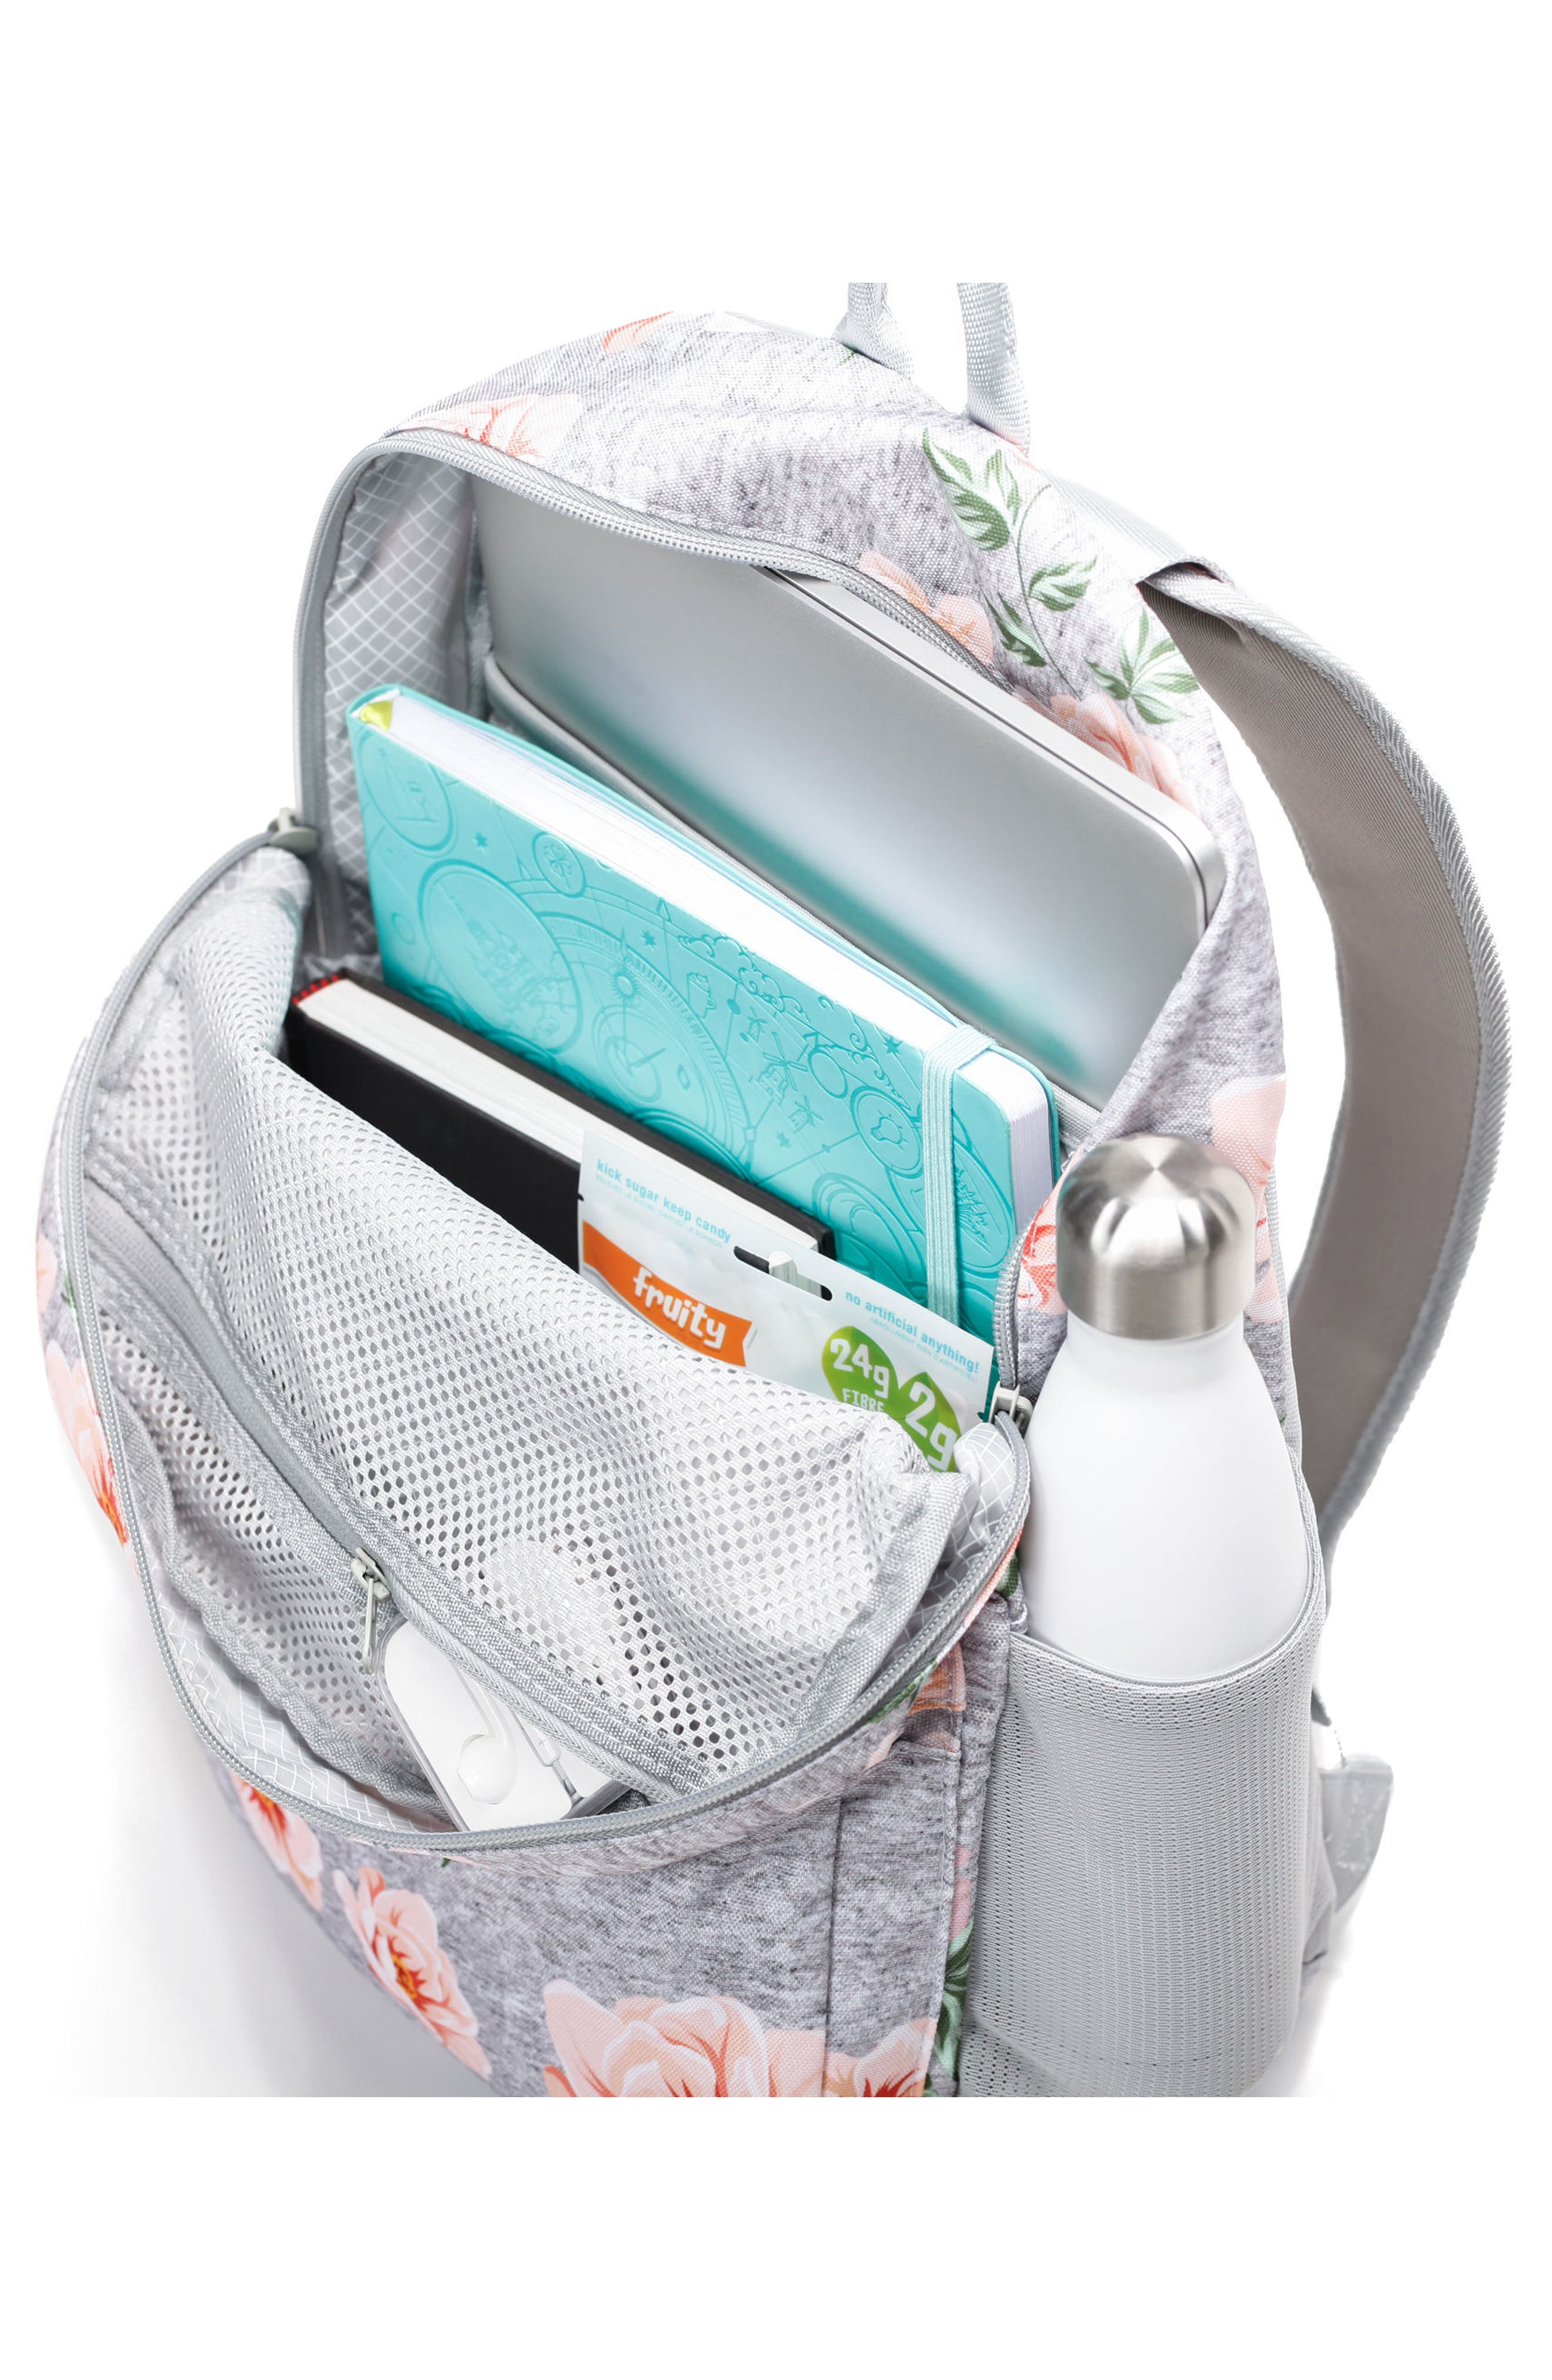 Ace Backpack,                             Alternate thumbnail 4, color,                             Rose Gray